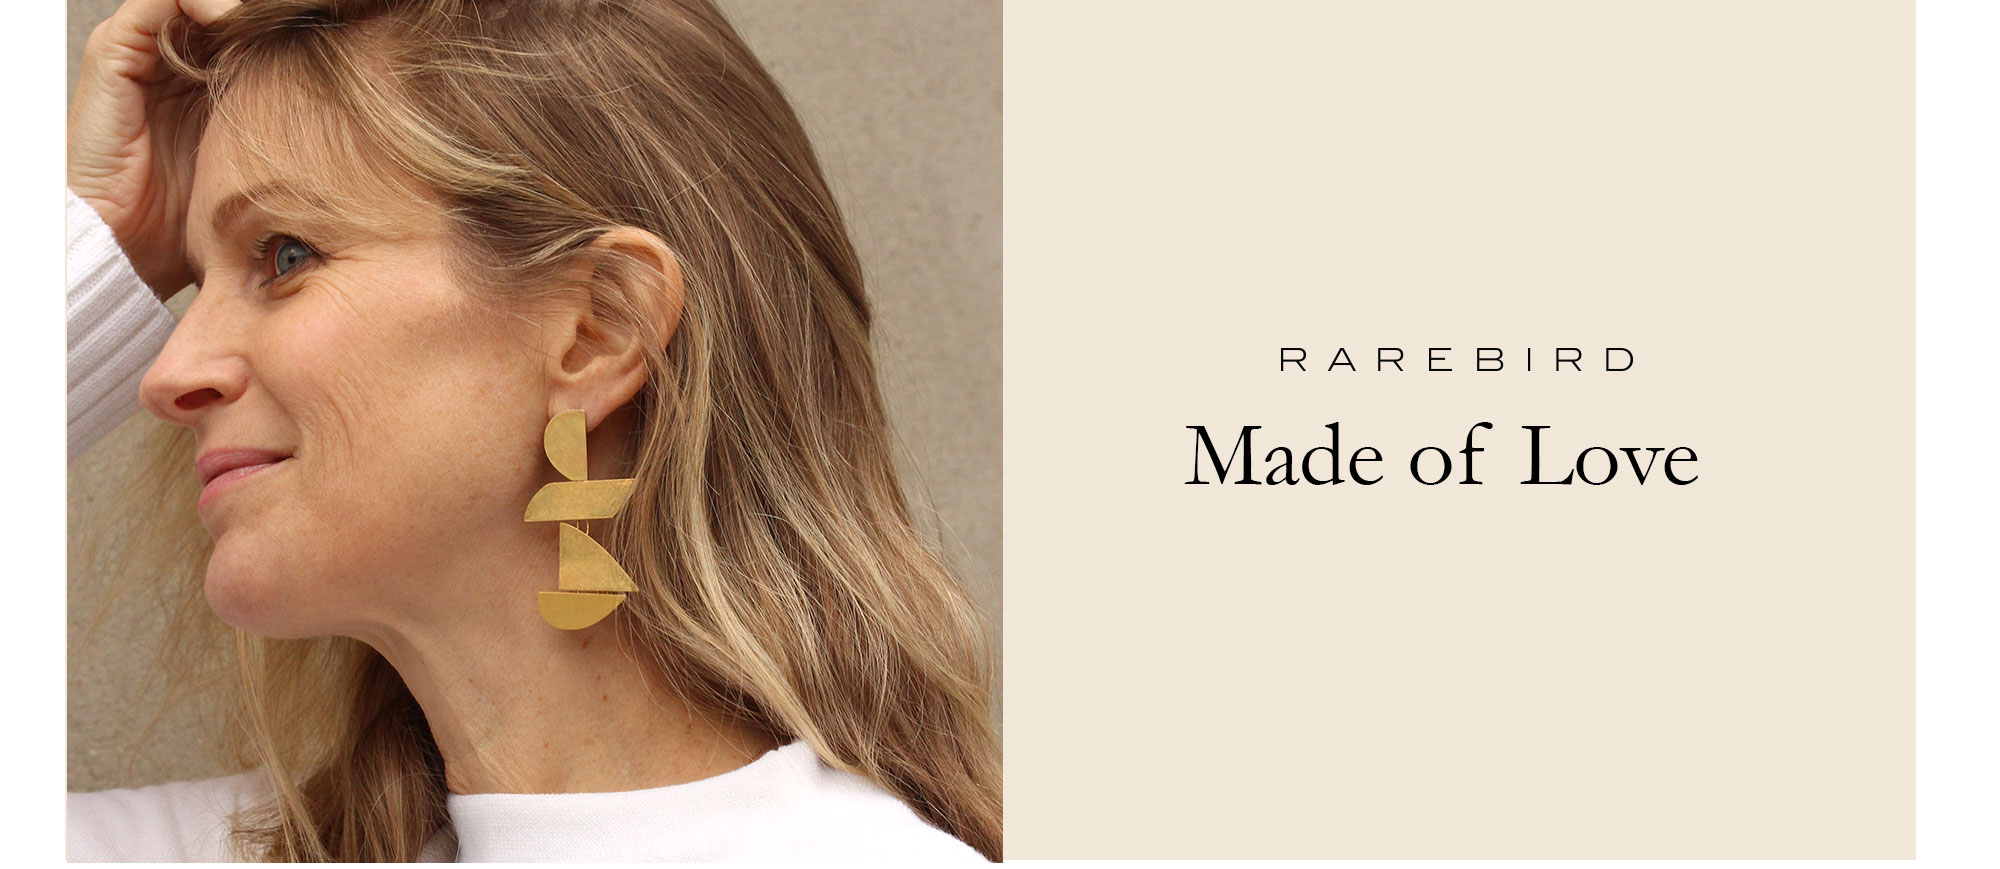 See the latest rarebird: Made of Love Earrings